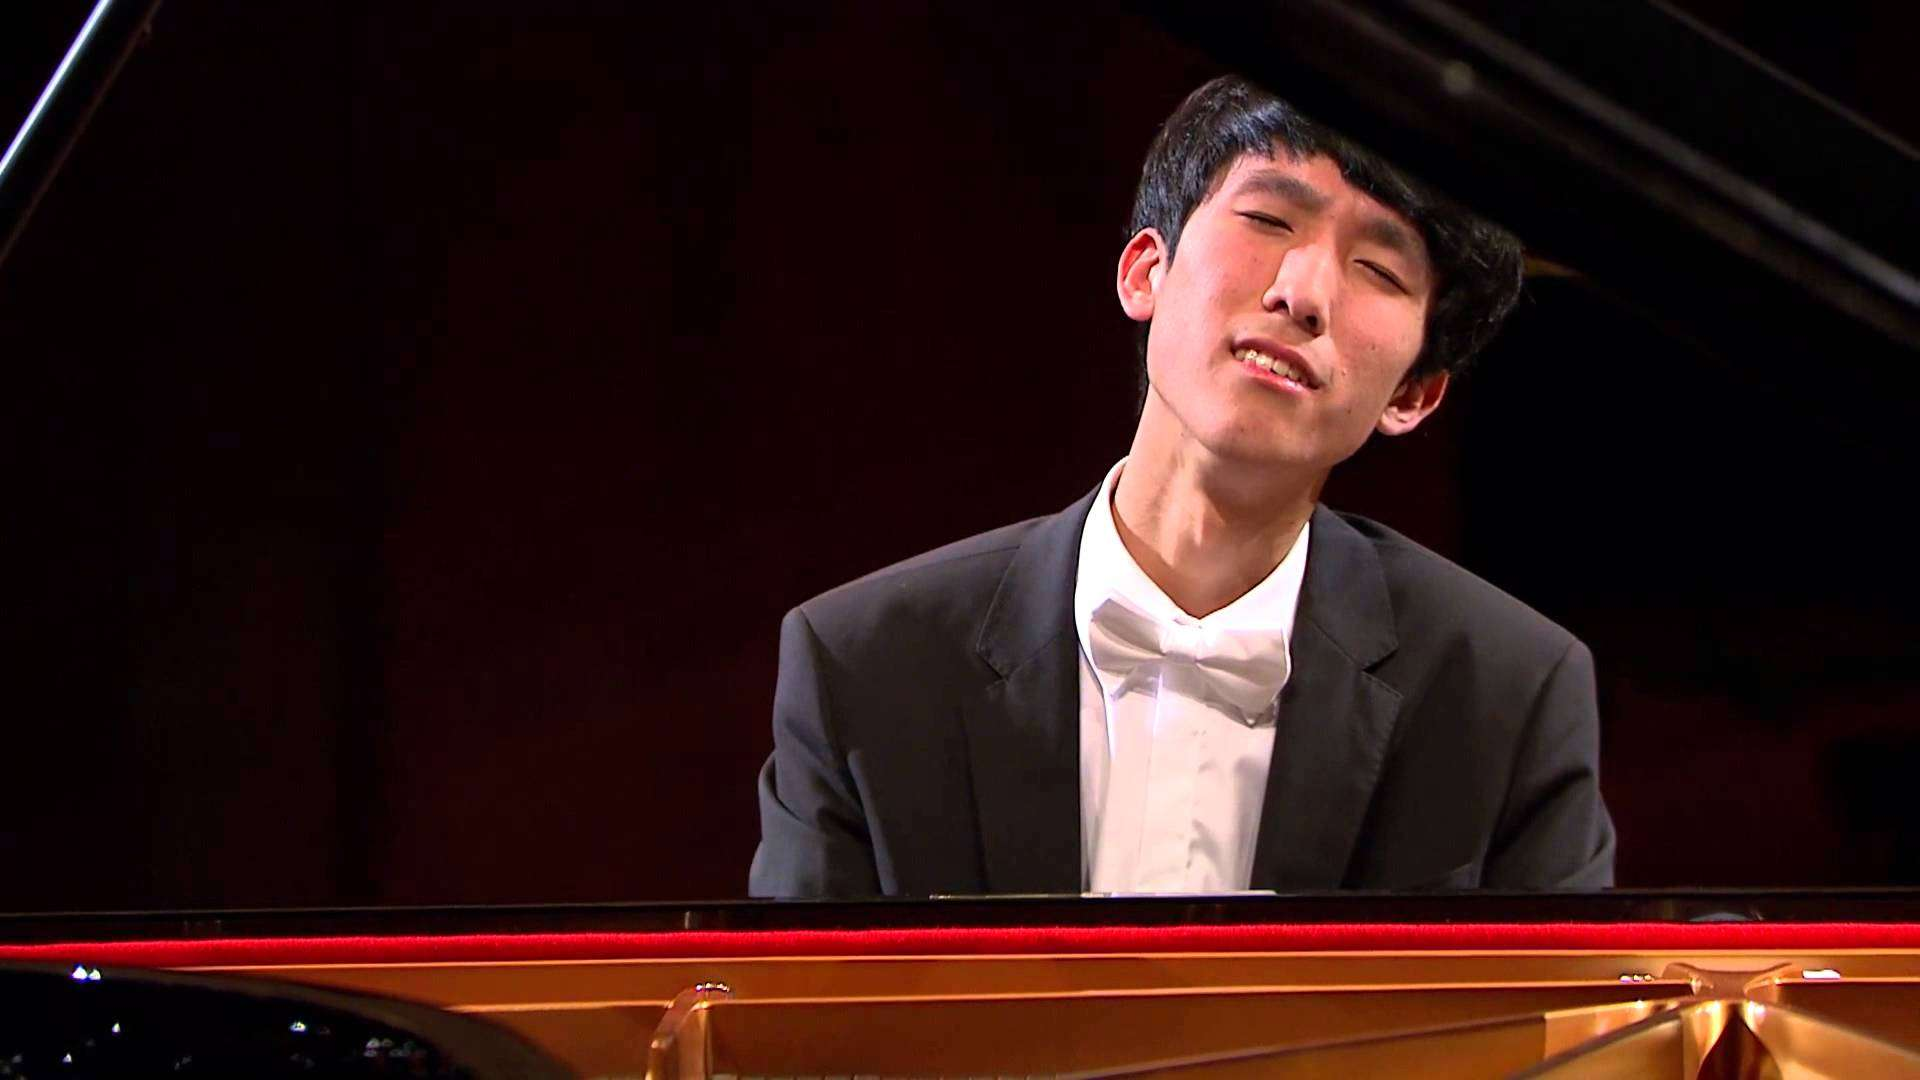 Eric Lu – Prelude in D flat major Op. 28 No. 15 (third stage) - YouTube